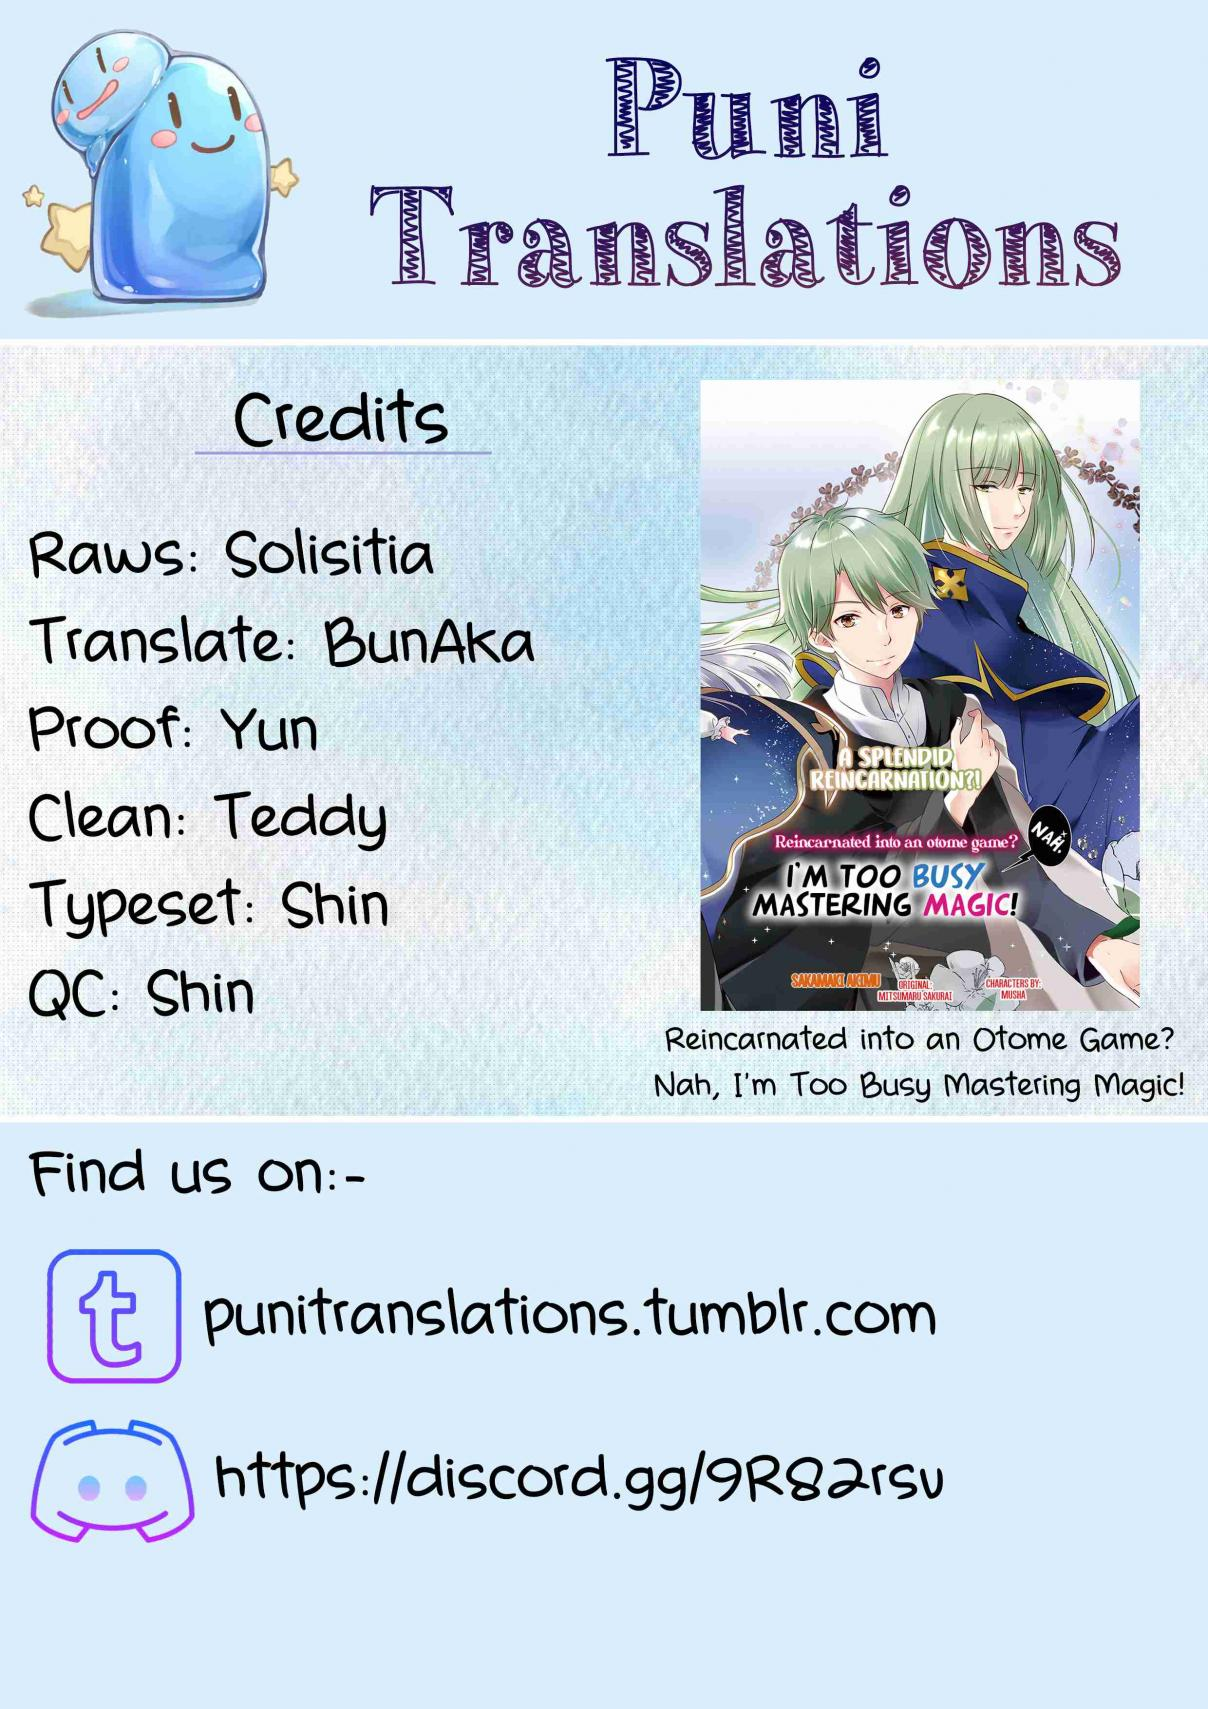 Reincarnated into an Otome Game? Nah, I'm Too Busy Mastering Magic! Ch. 1.1